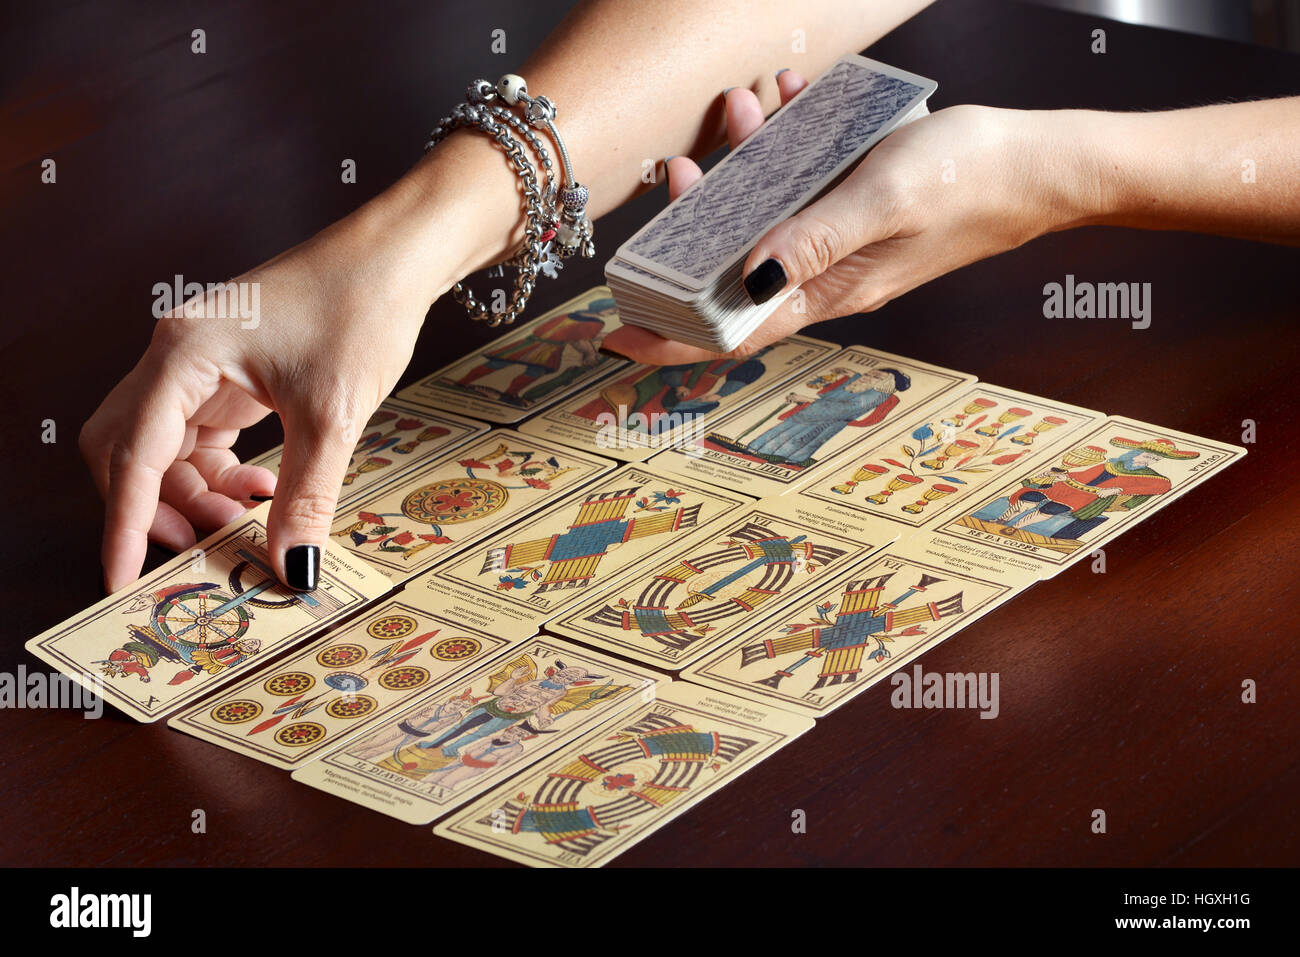 Female fortune tellers hands spreading vintage tarot cards on dark table surface - Stock Image